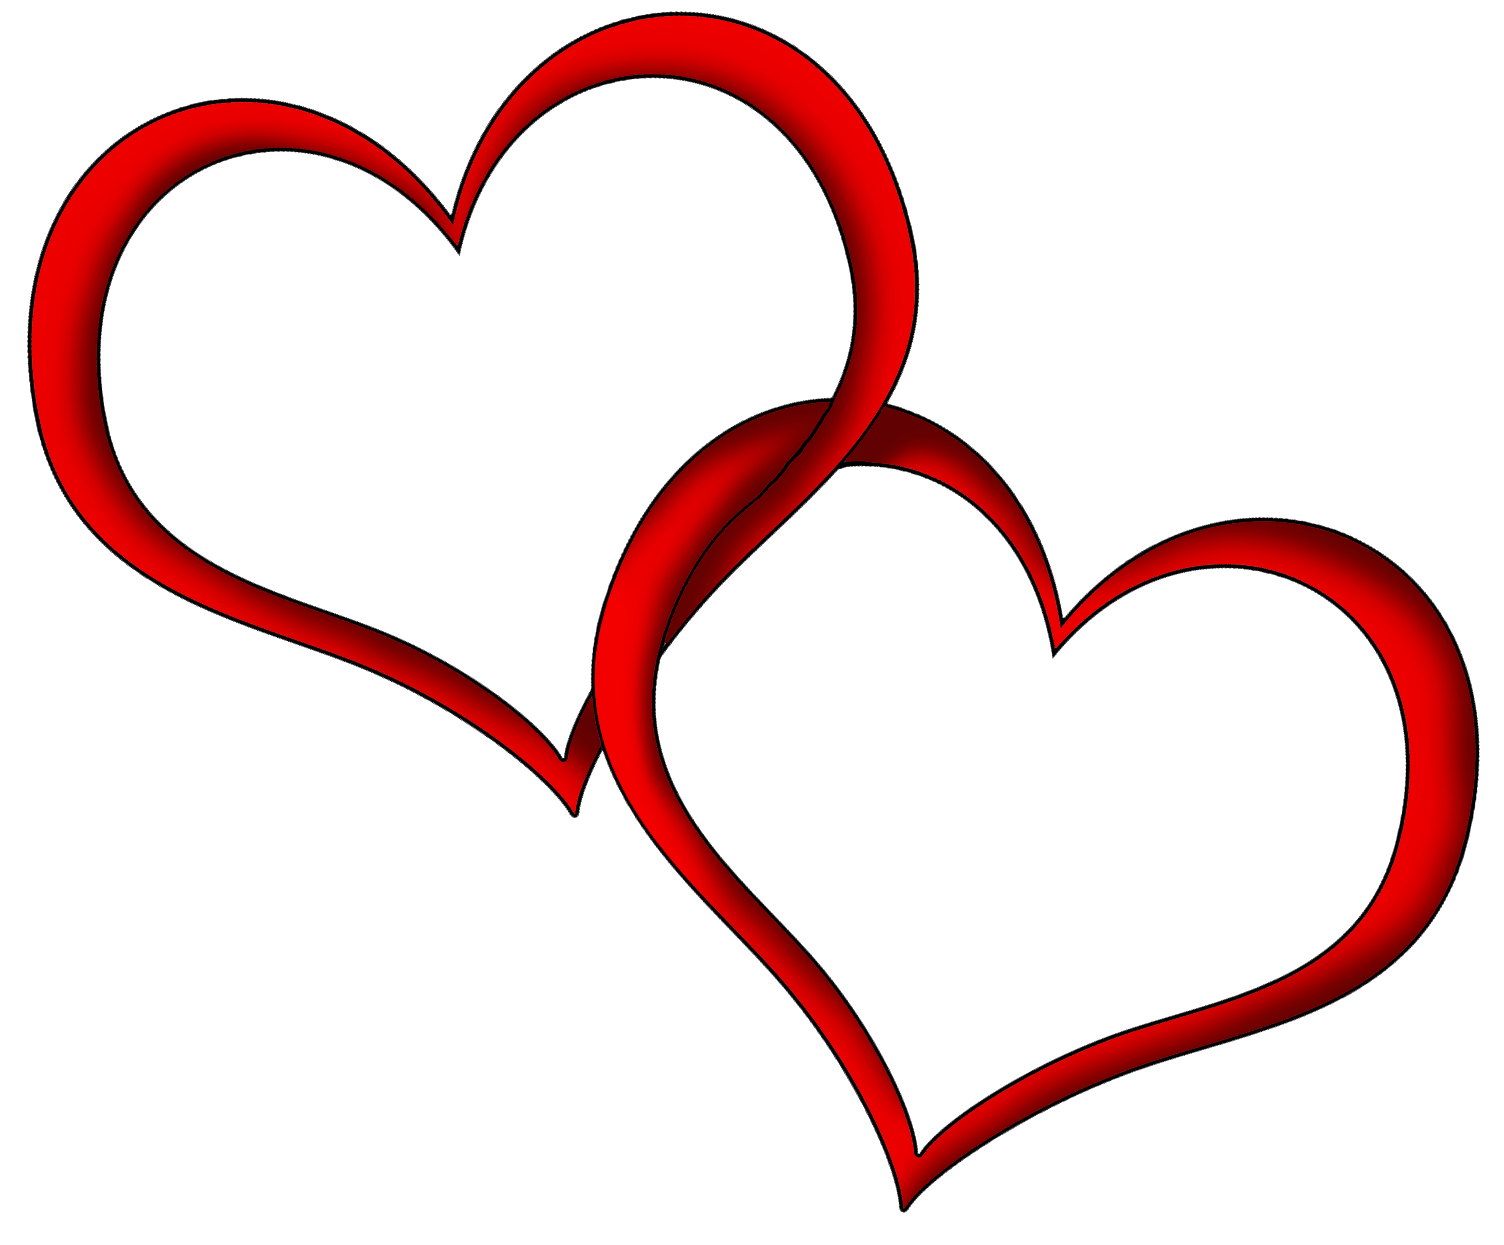 Transparent red hearts. Heart png clipart clip black and white stock